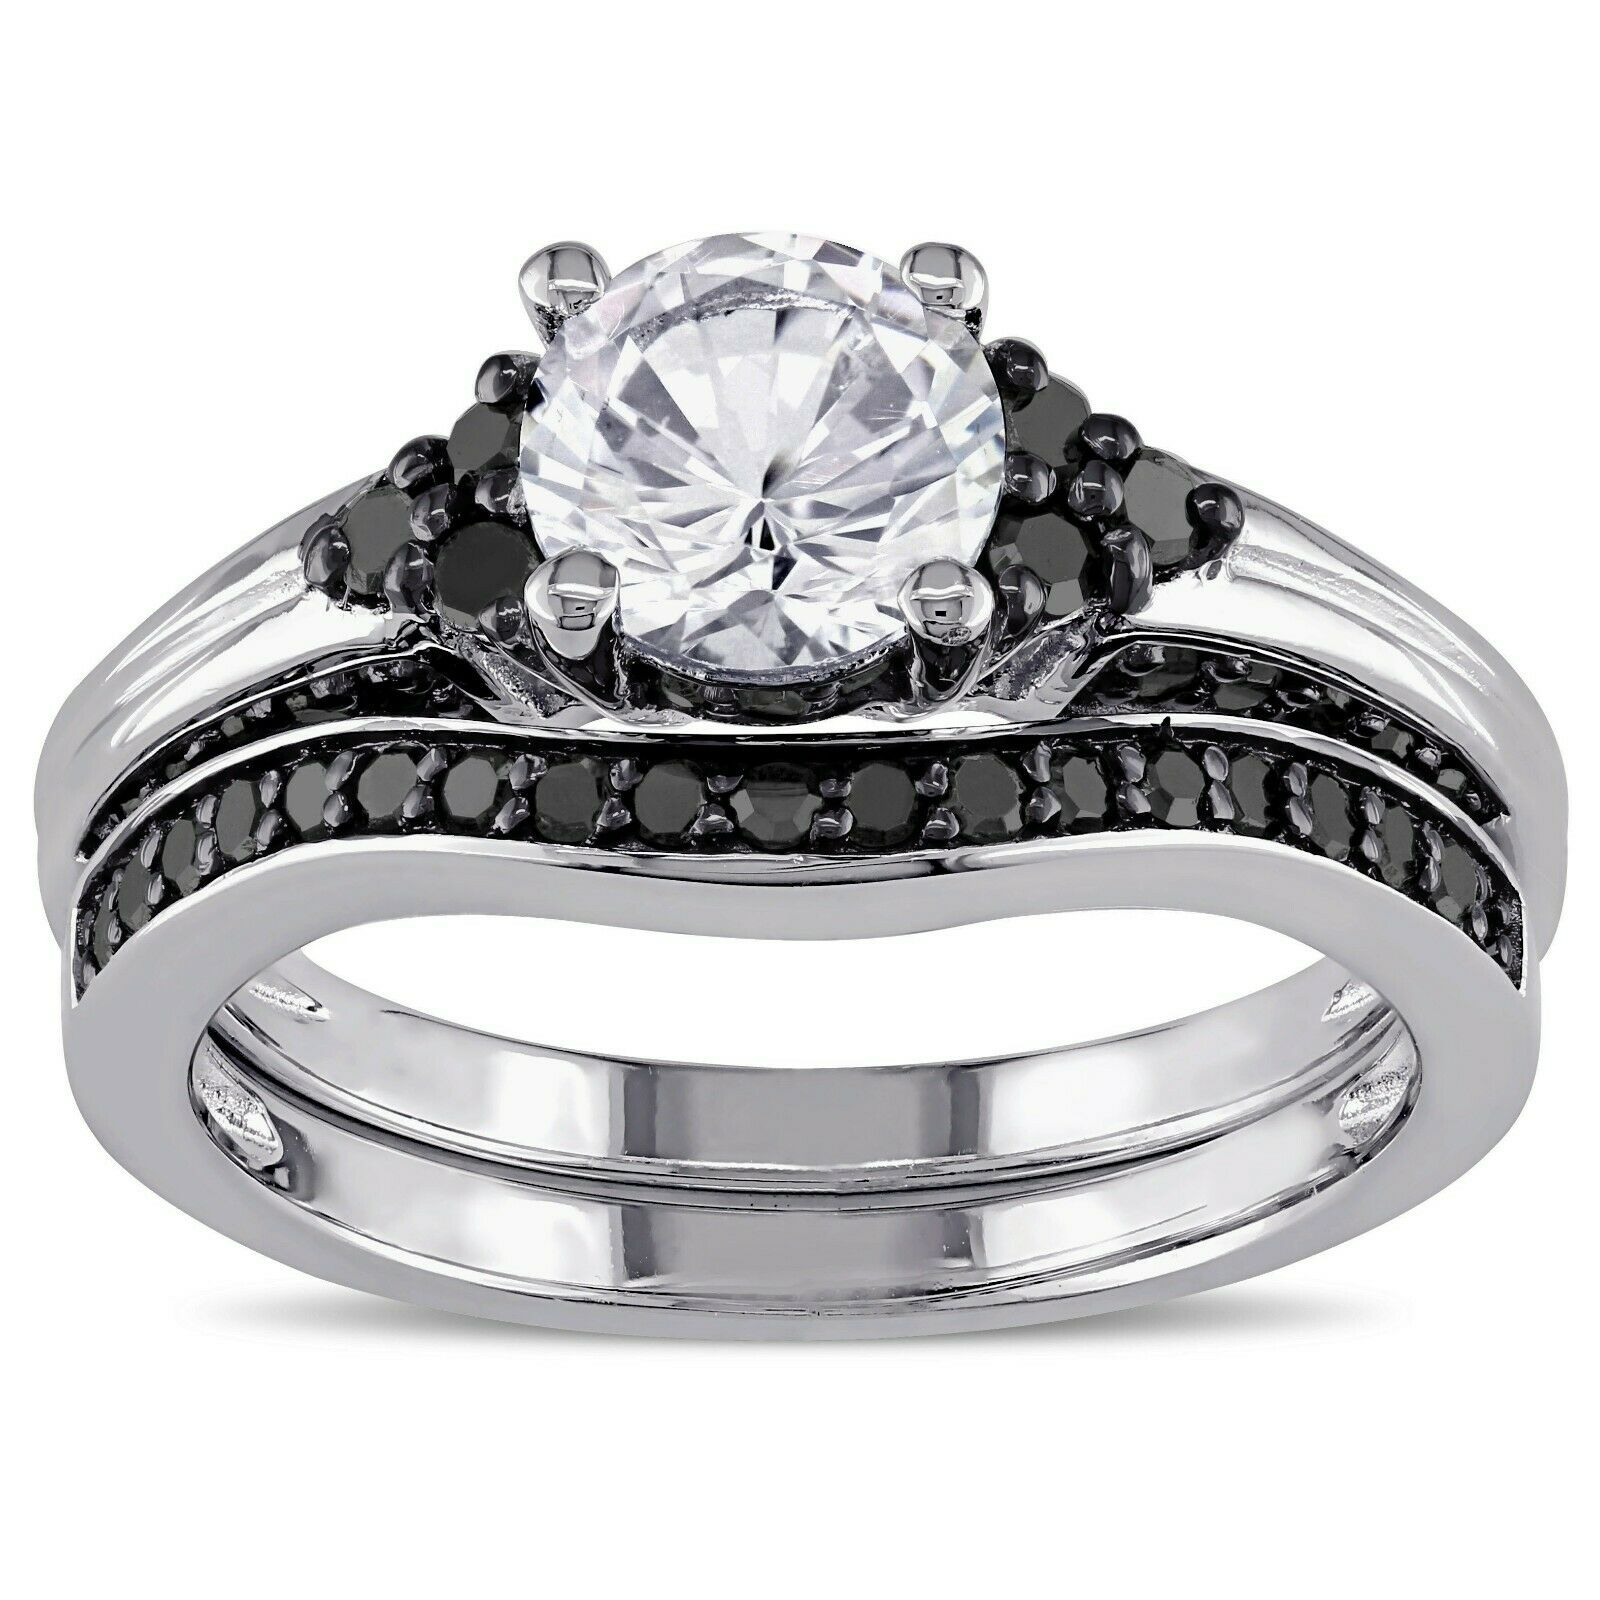 Engagement Bridal Ring Set 1.20 Ct Round Cut Diamond With 14K White gold Over